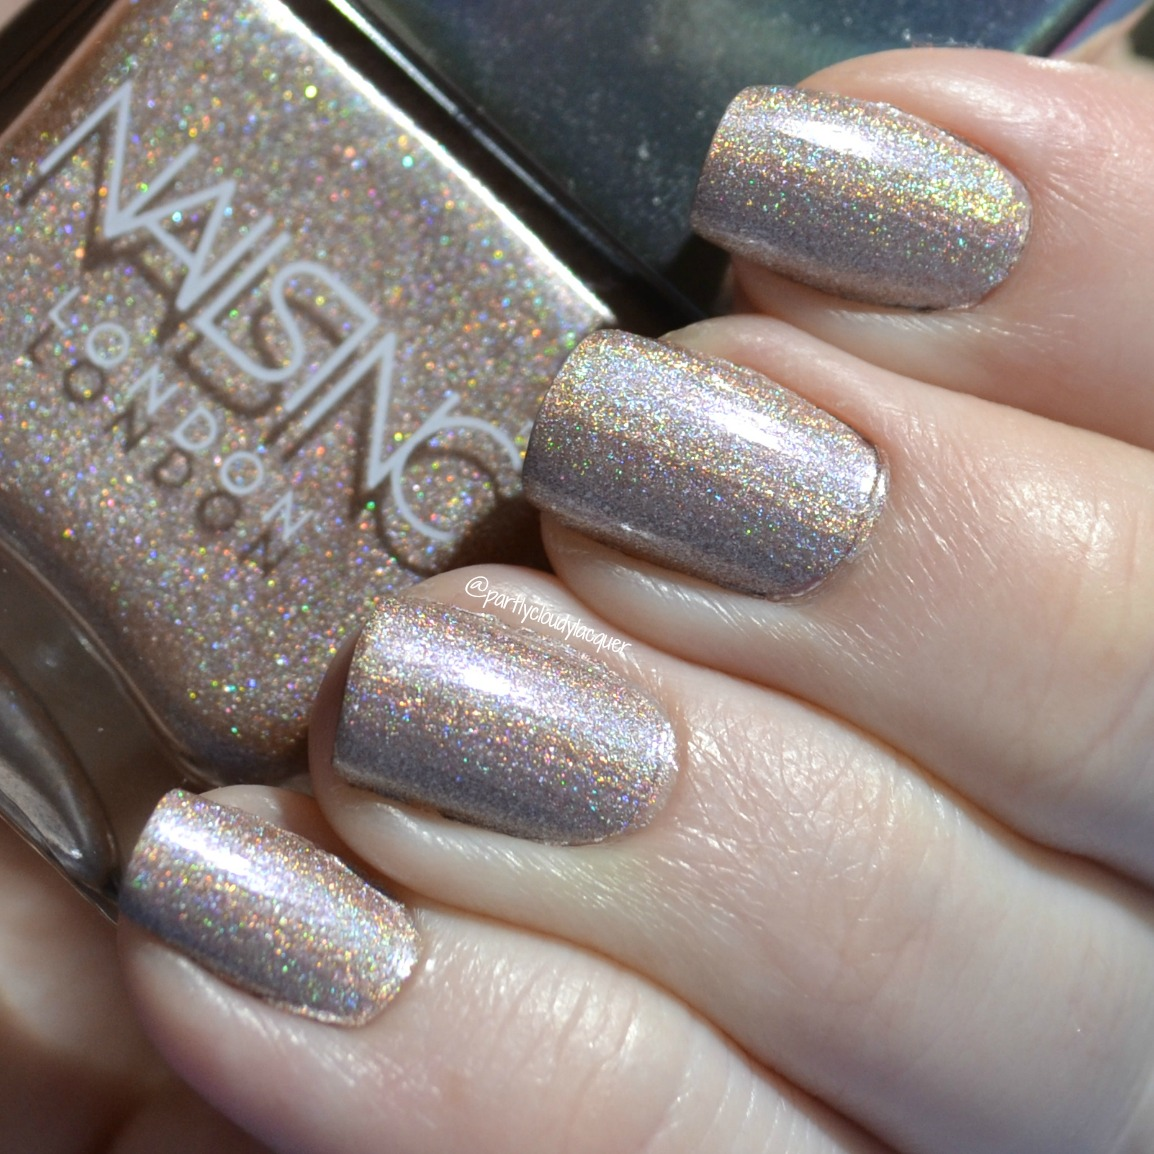 Nails Inc. Straight to My Head   Partly Cloudy With a Chance of Lacquer